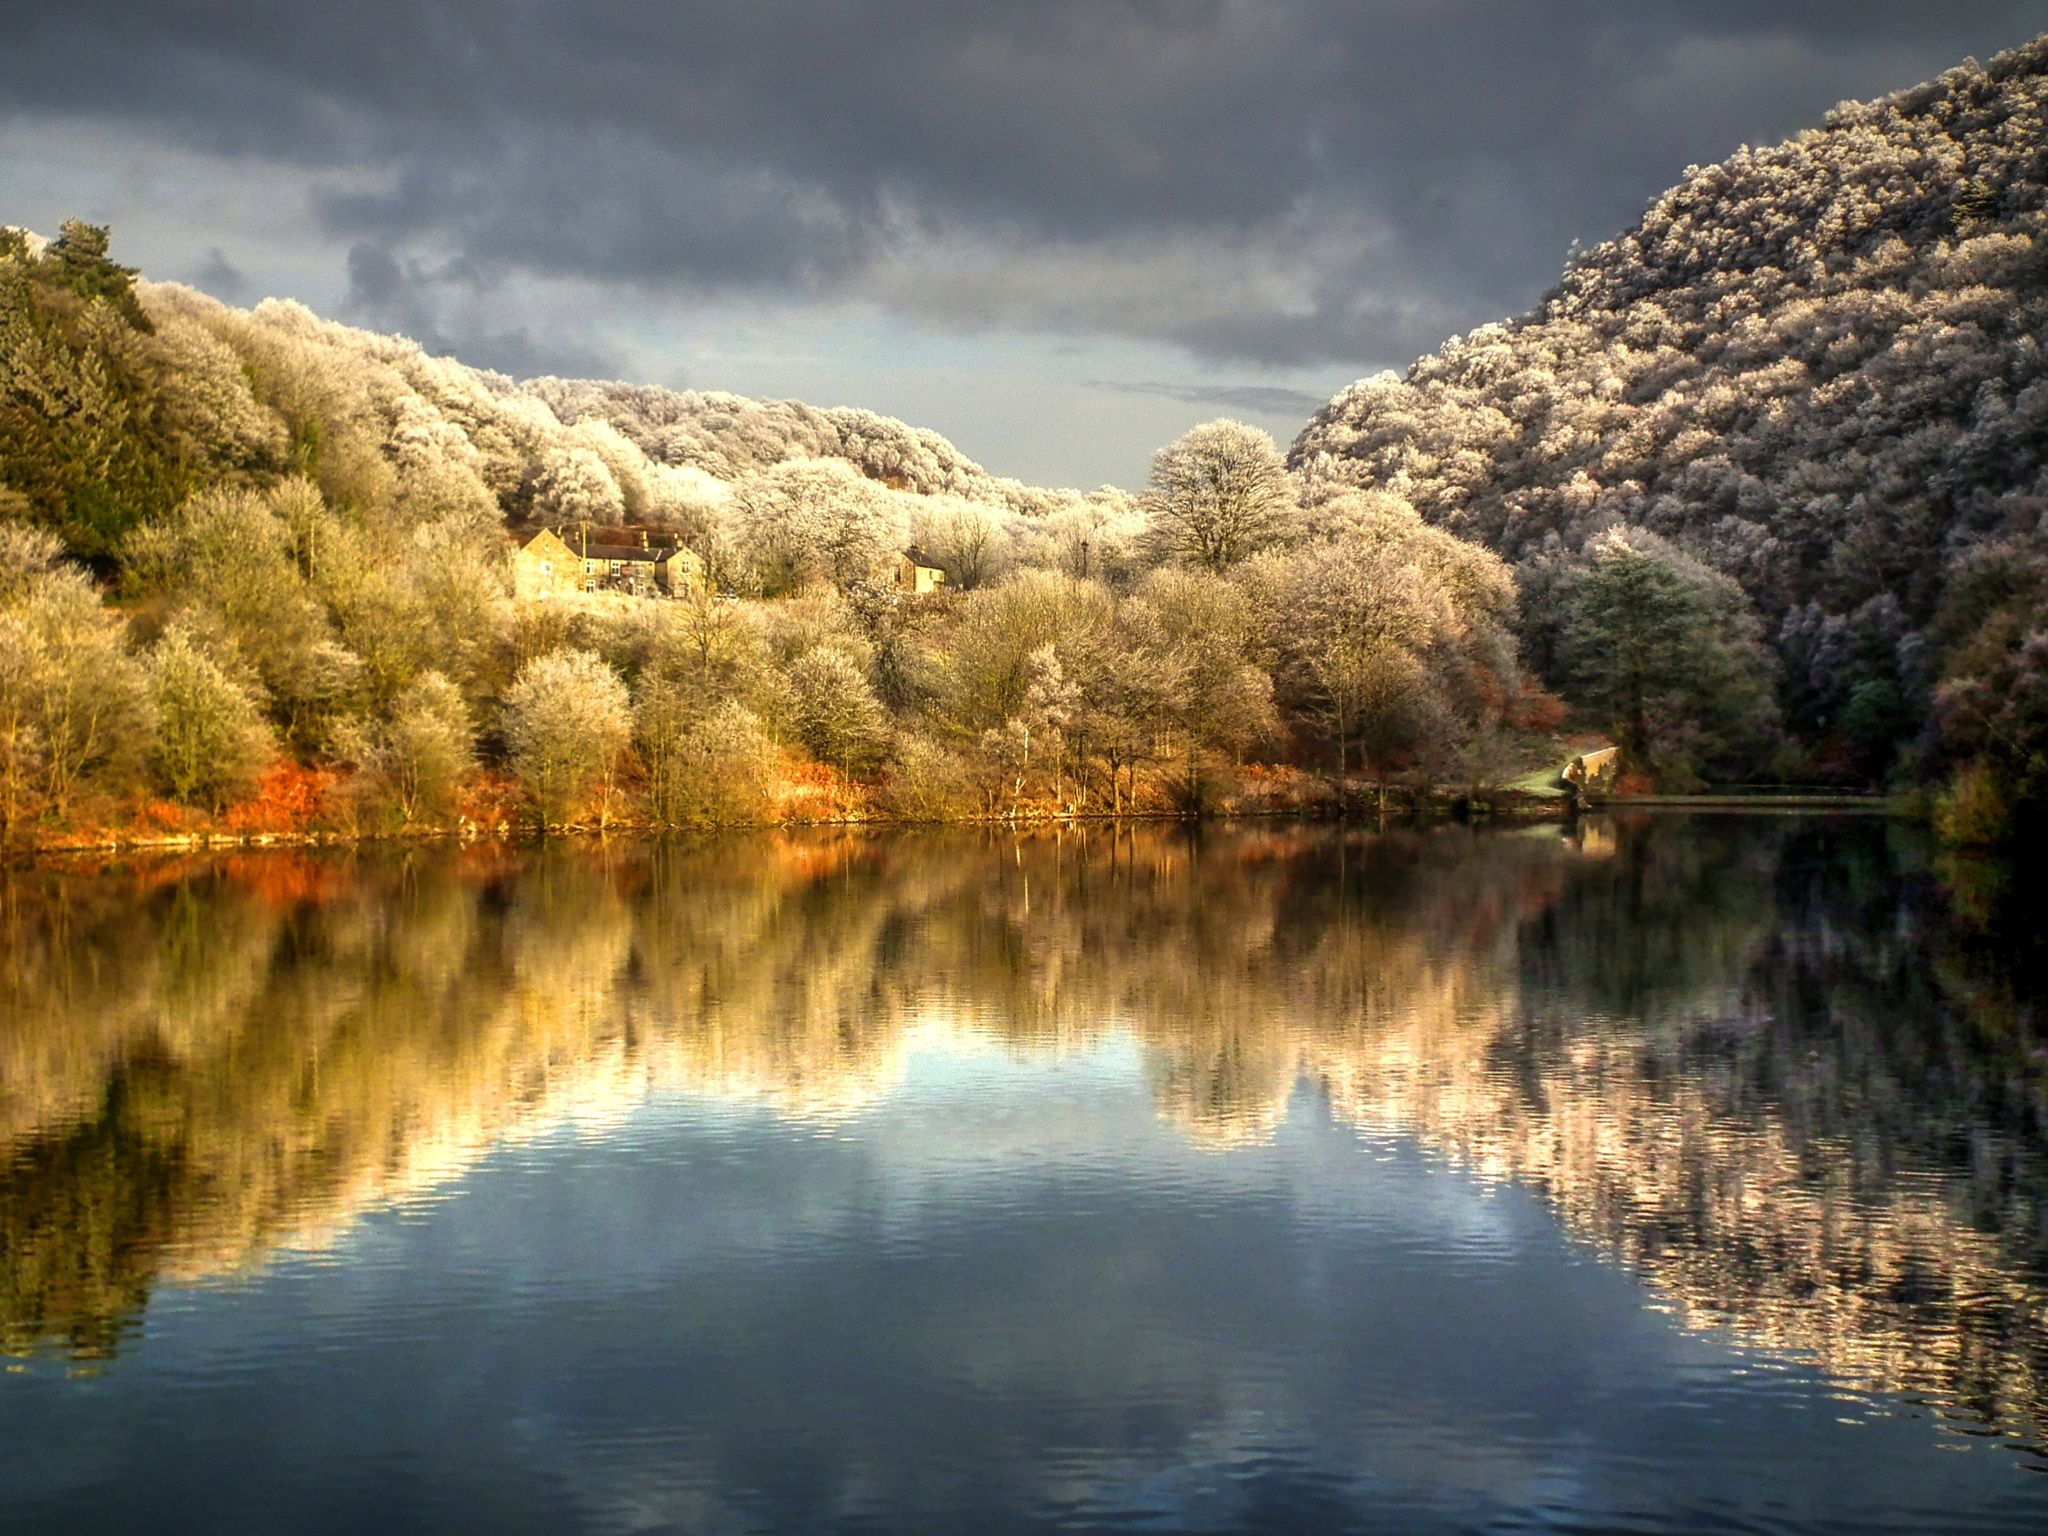 Winter Reflections by ianmoorcroft